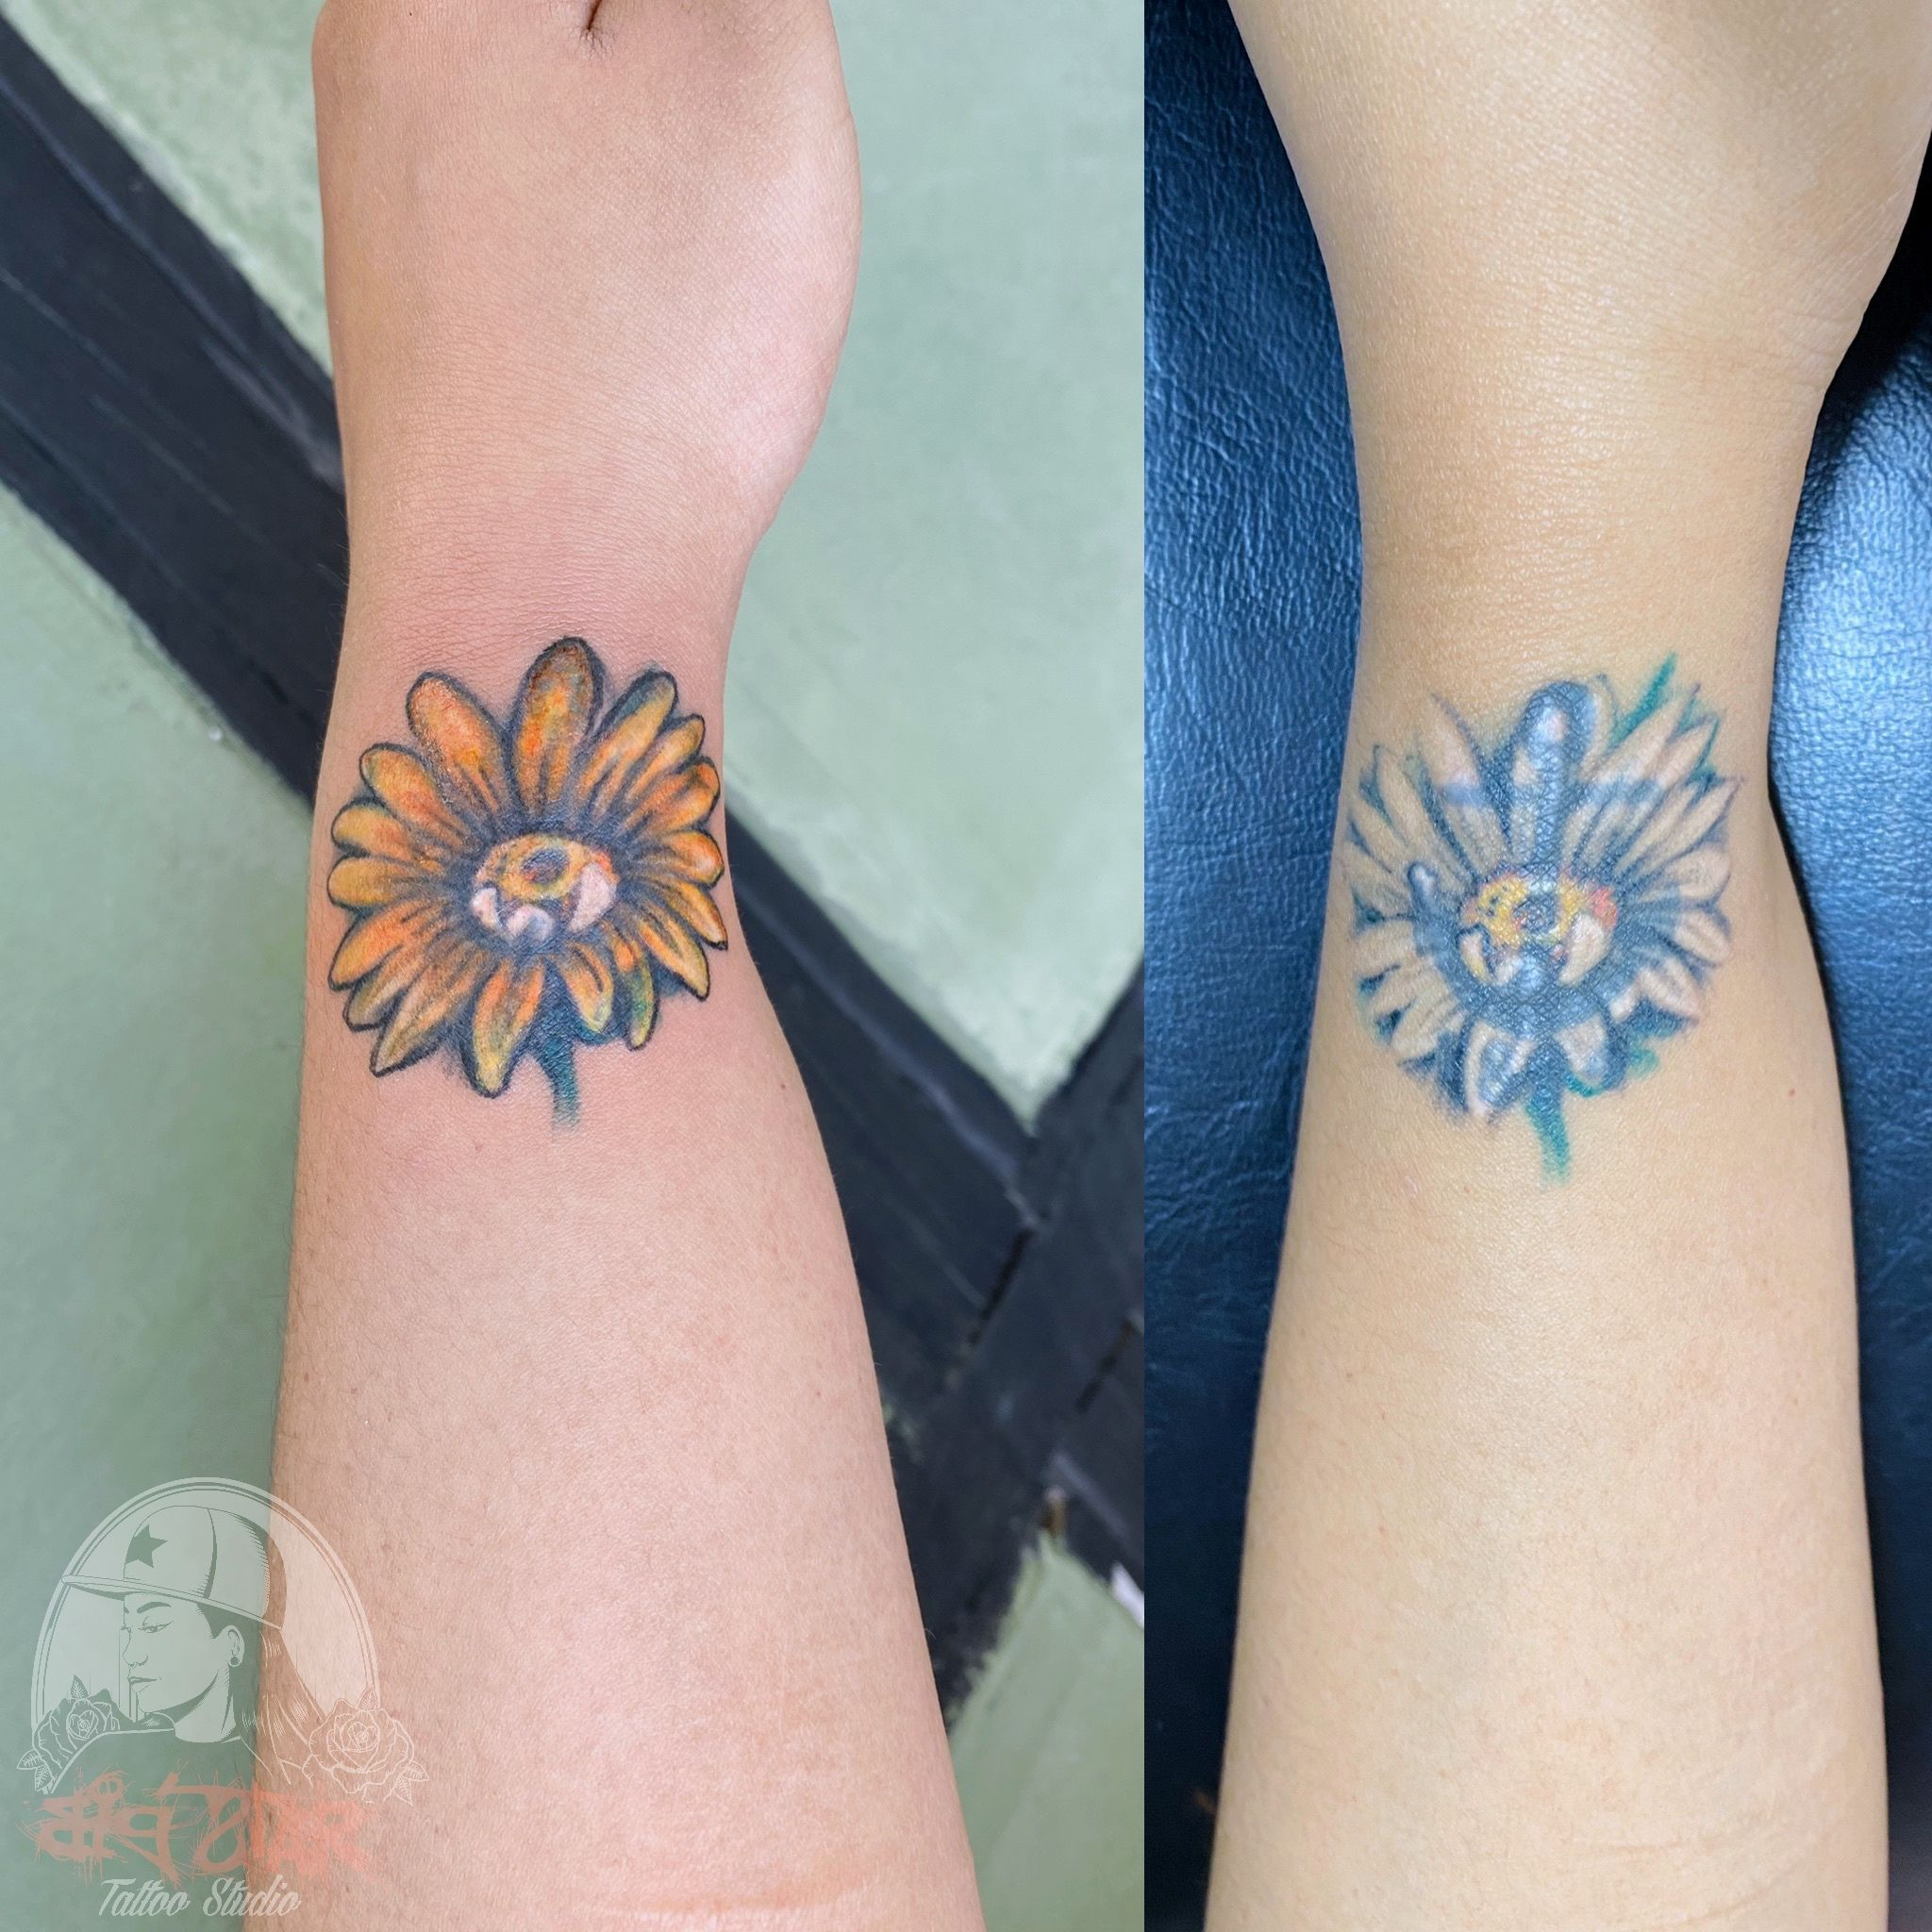 Cover up tattoo -  Cover up tattoo should be more beautiful than the old one. #coverup #tattoo #flowertattoos #tattoos - #Cover #Tattoo #TattooArtistsaesthetic #TattooArtistsatwork #TattooArtistsboy #TattooArtistsfemale #TattooArtistshowtobecomea #TattooArtistsmale #TattooArtistsportfolio